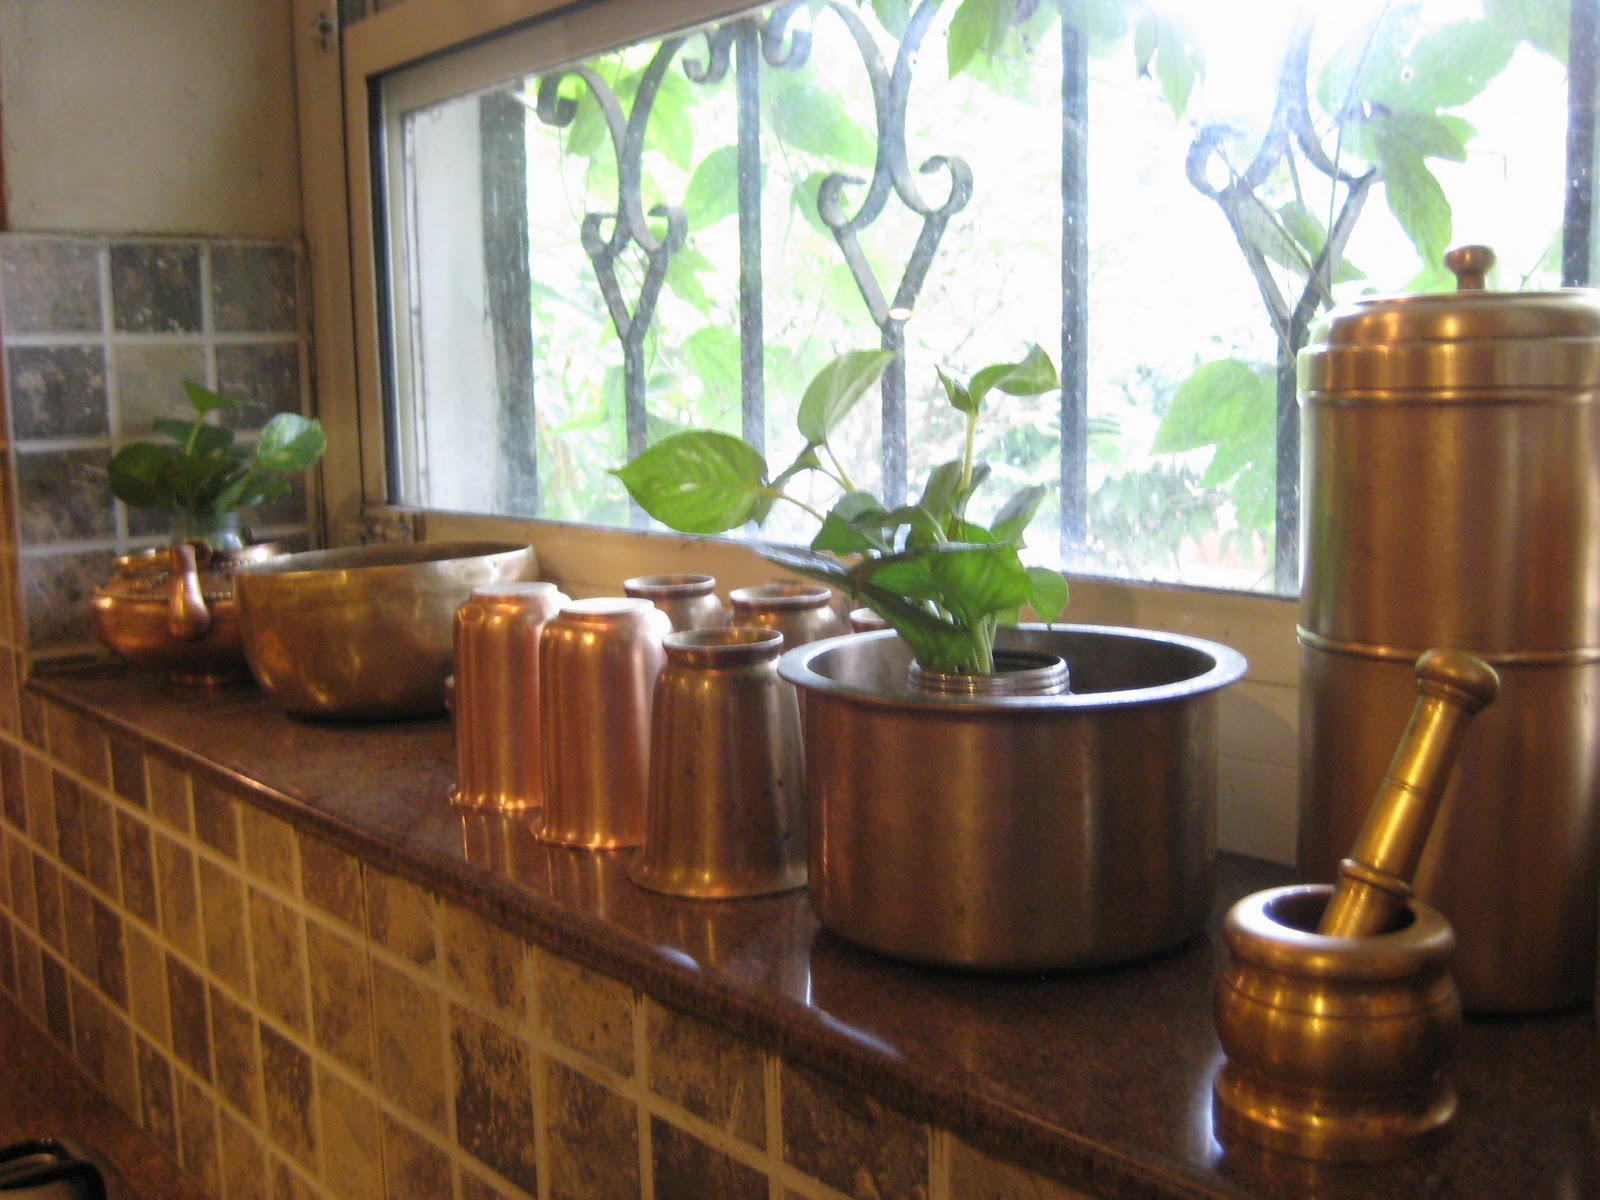 Avial n rasam heart h n home kamini 39 s eclectic kitchen for Traditional indian kitchen pictures